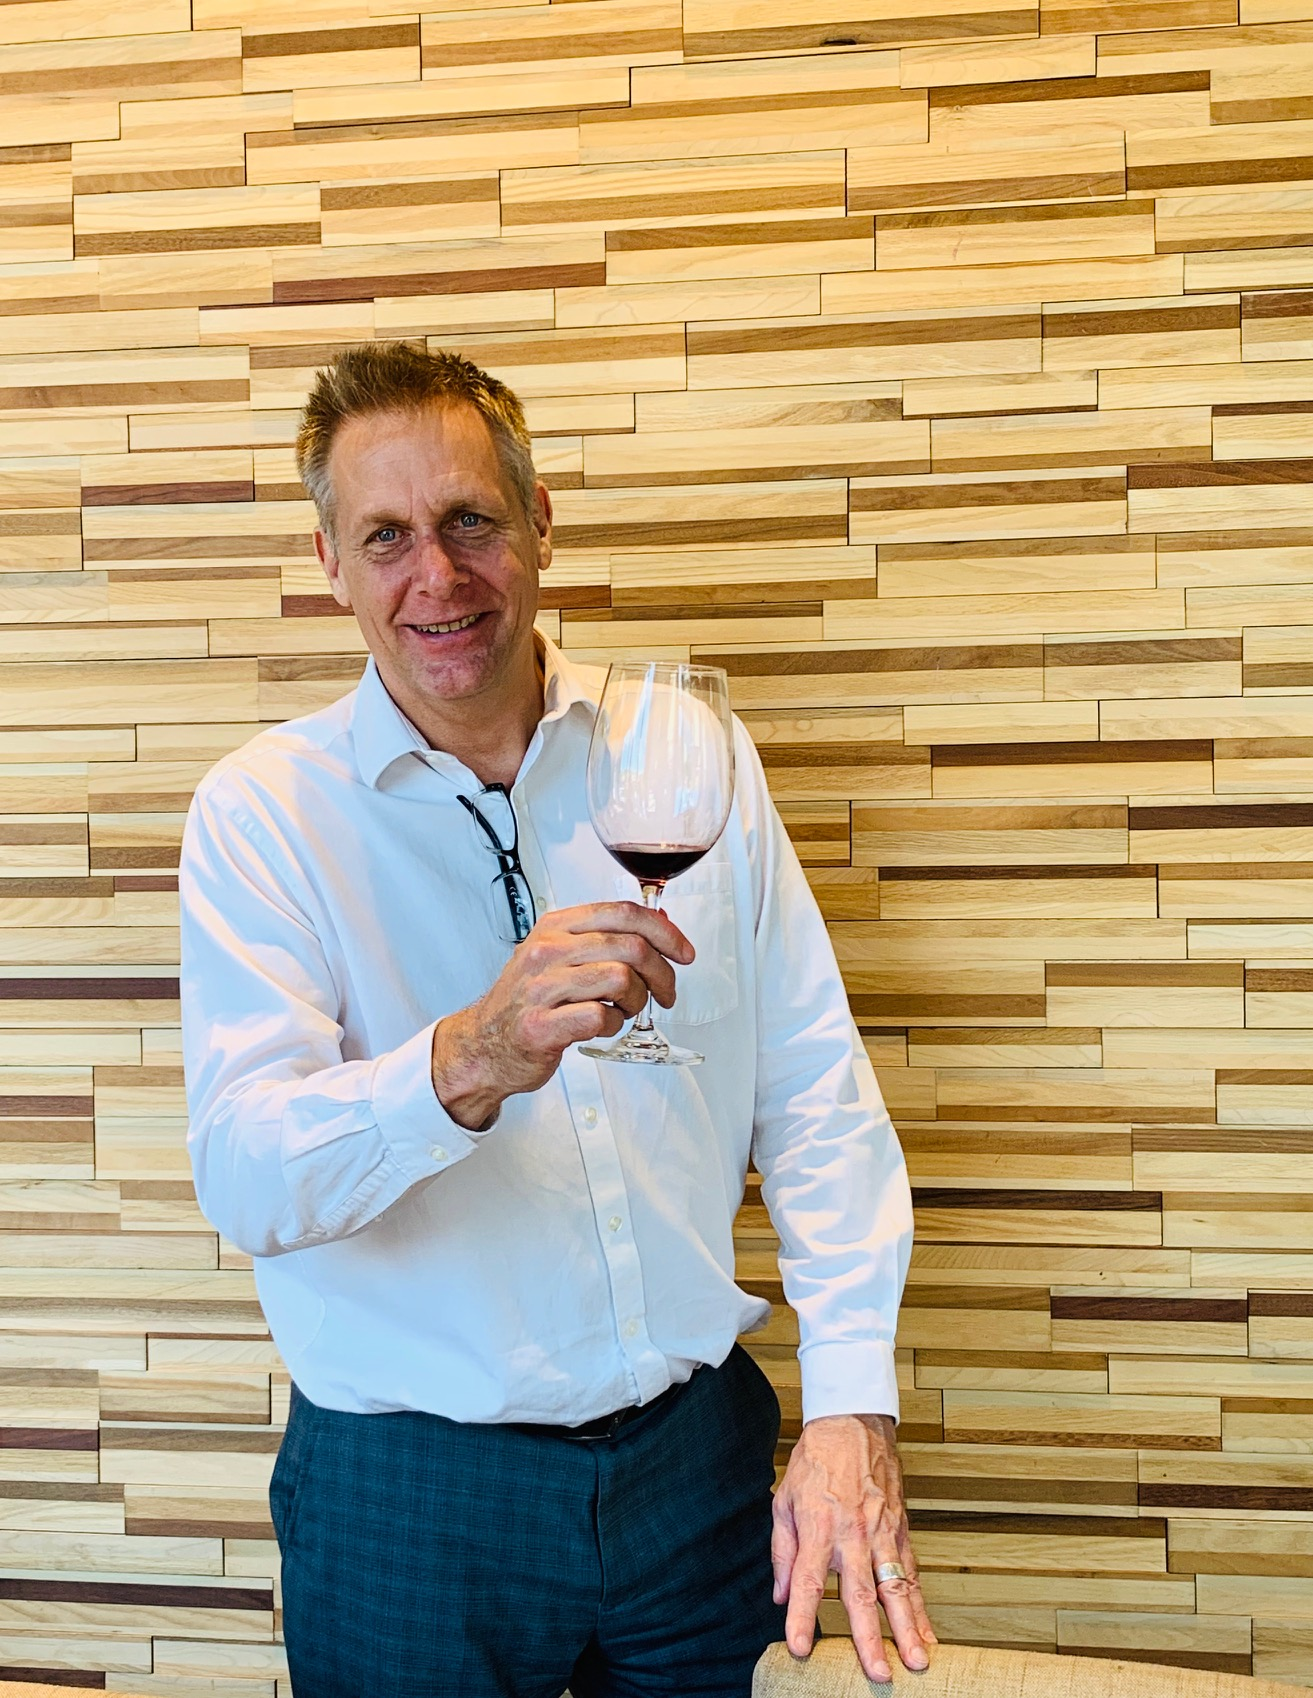 Our Food Wine Pairings expert, Brian Cousins